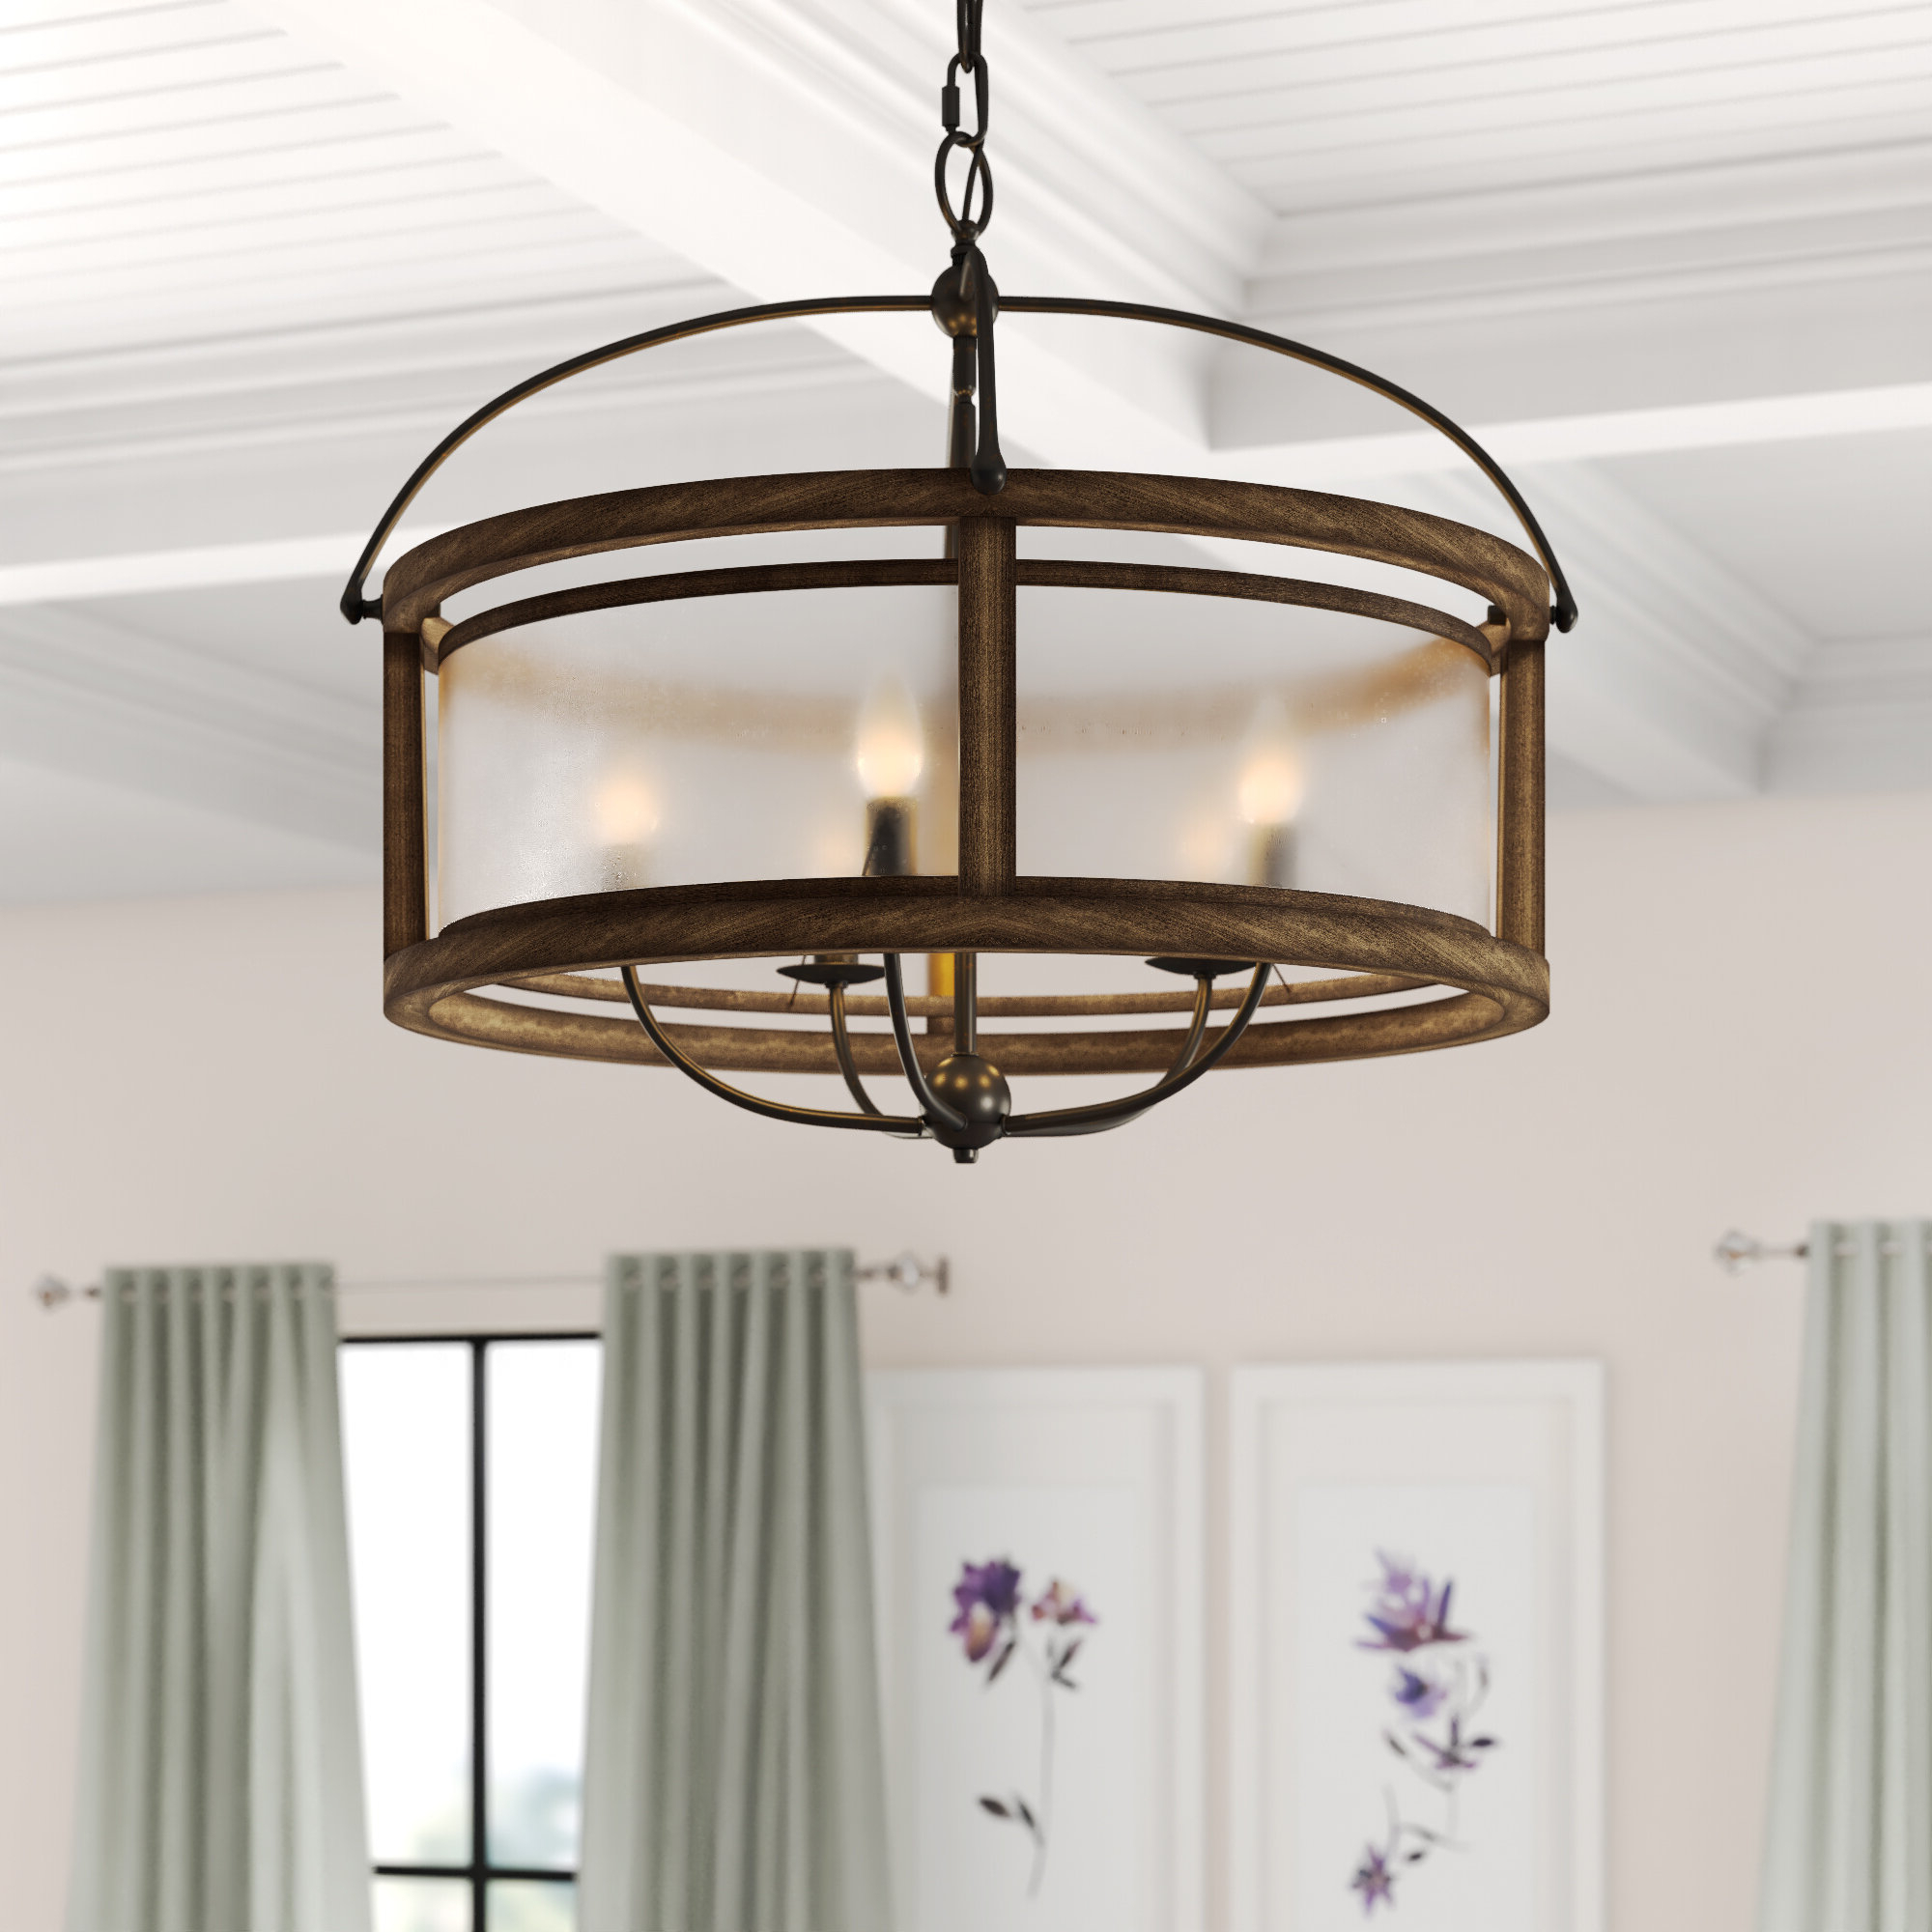 Aadhya 5 Light Drum Chandelier For Well Liked Dailey 4 Light Drum Chandeliers (View 2 of 25)